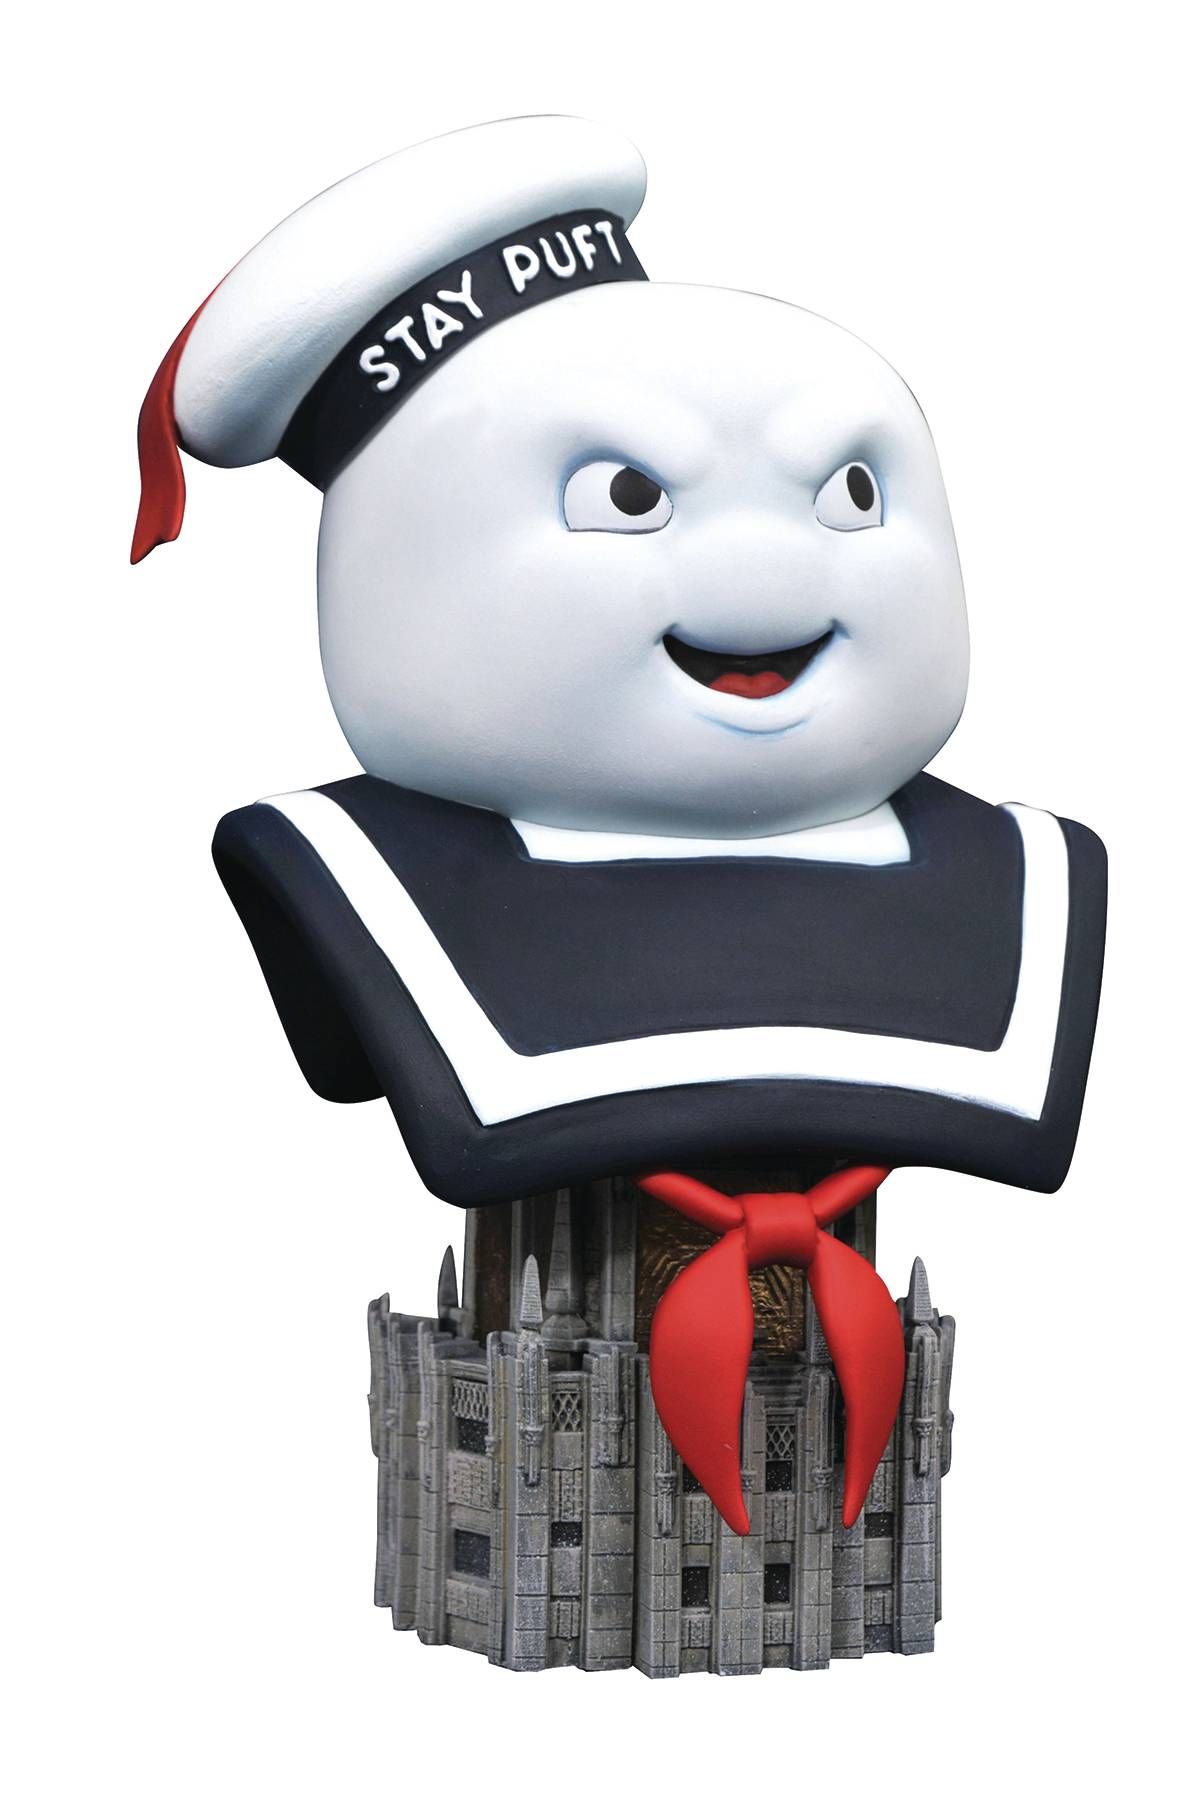 GHOSTBUSTERS LEGENDS IN 3D STAY PUFF 1/2 SCALE BUST